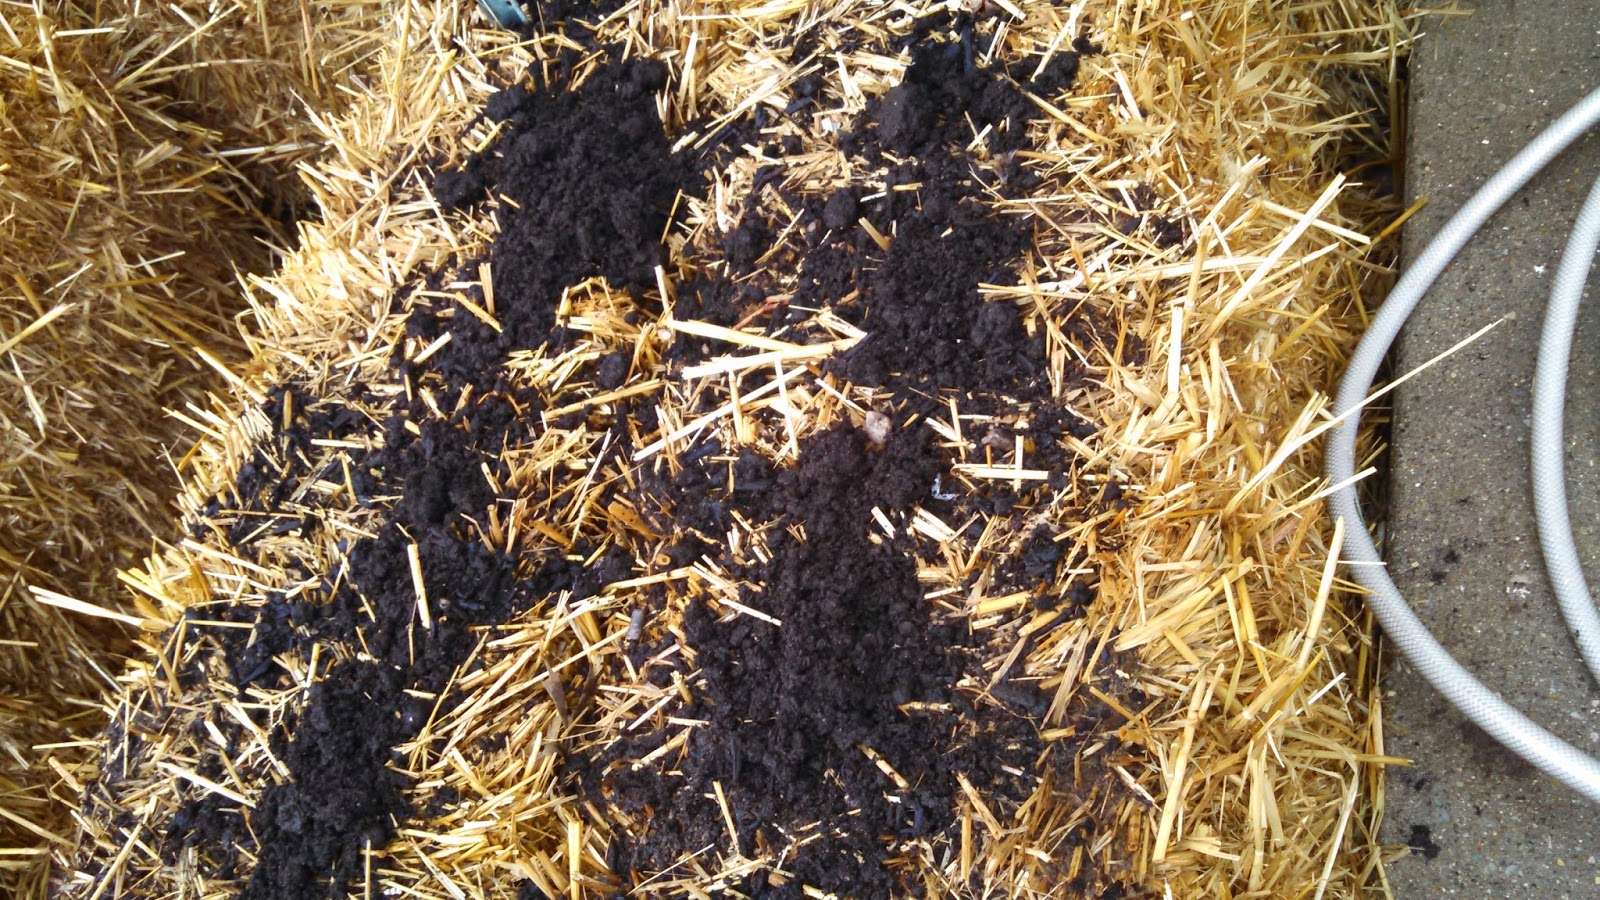 Conditioning Straw Bales for Planting